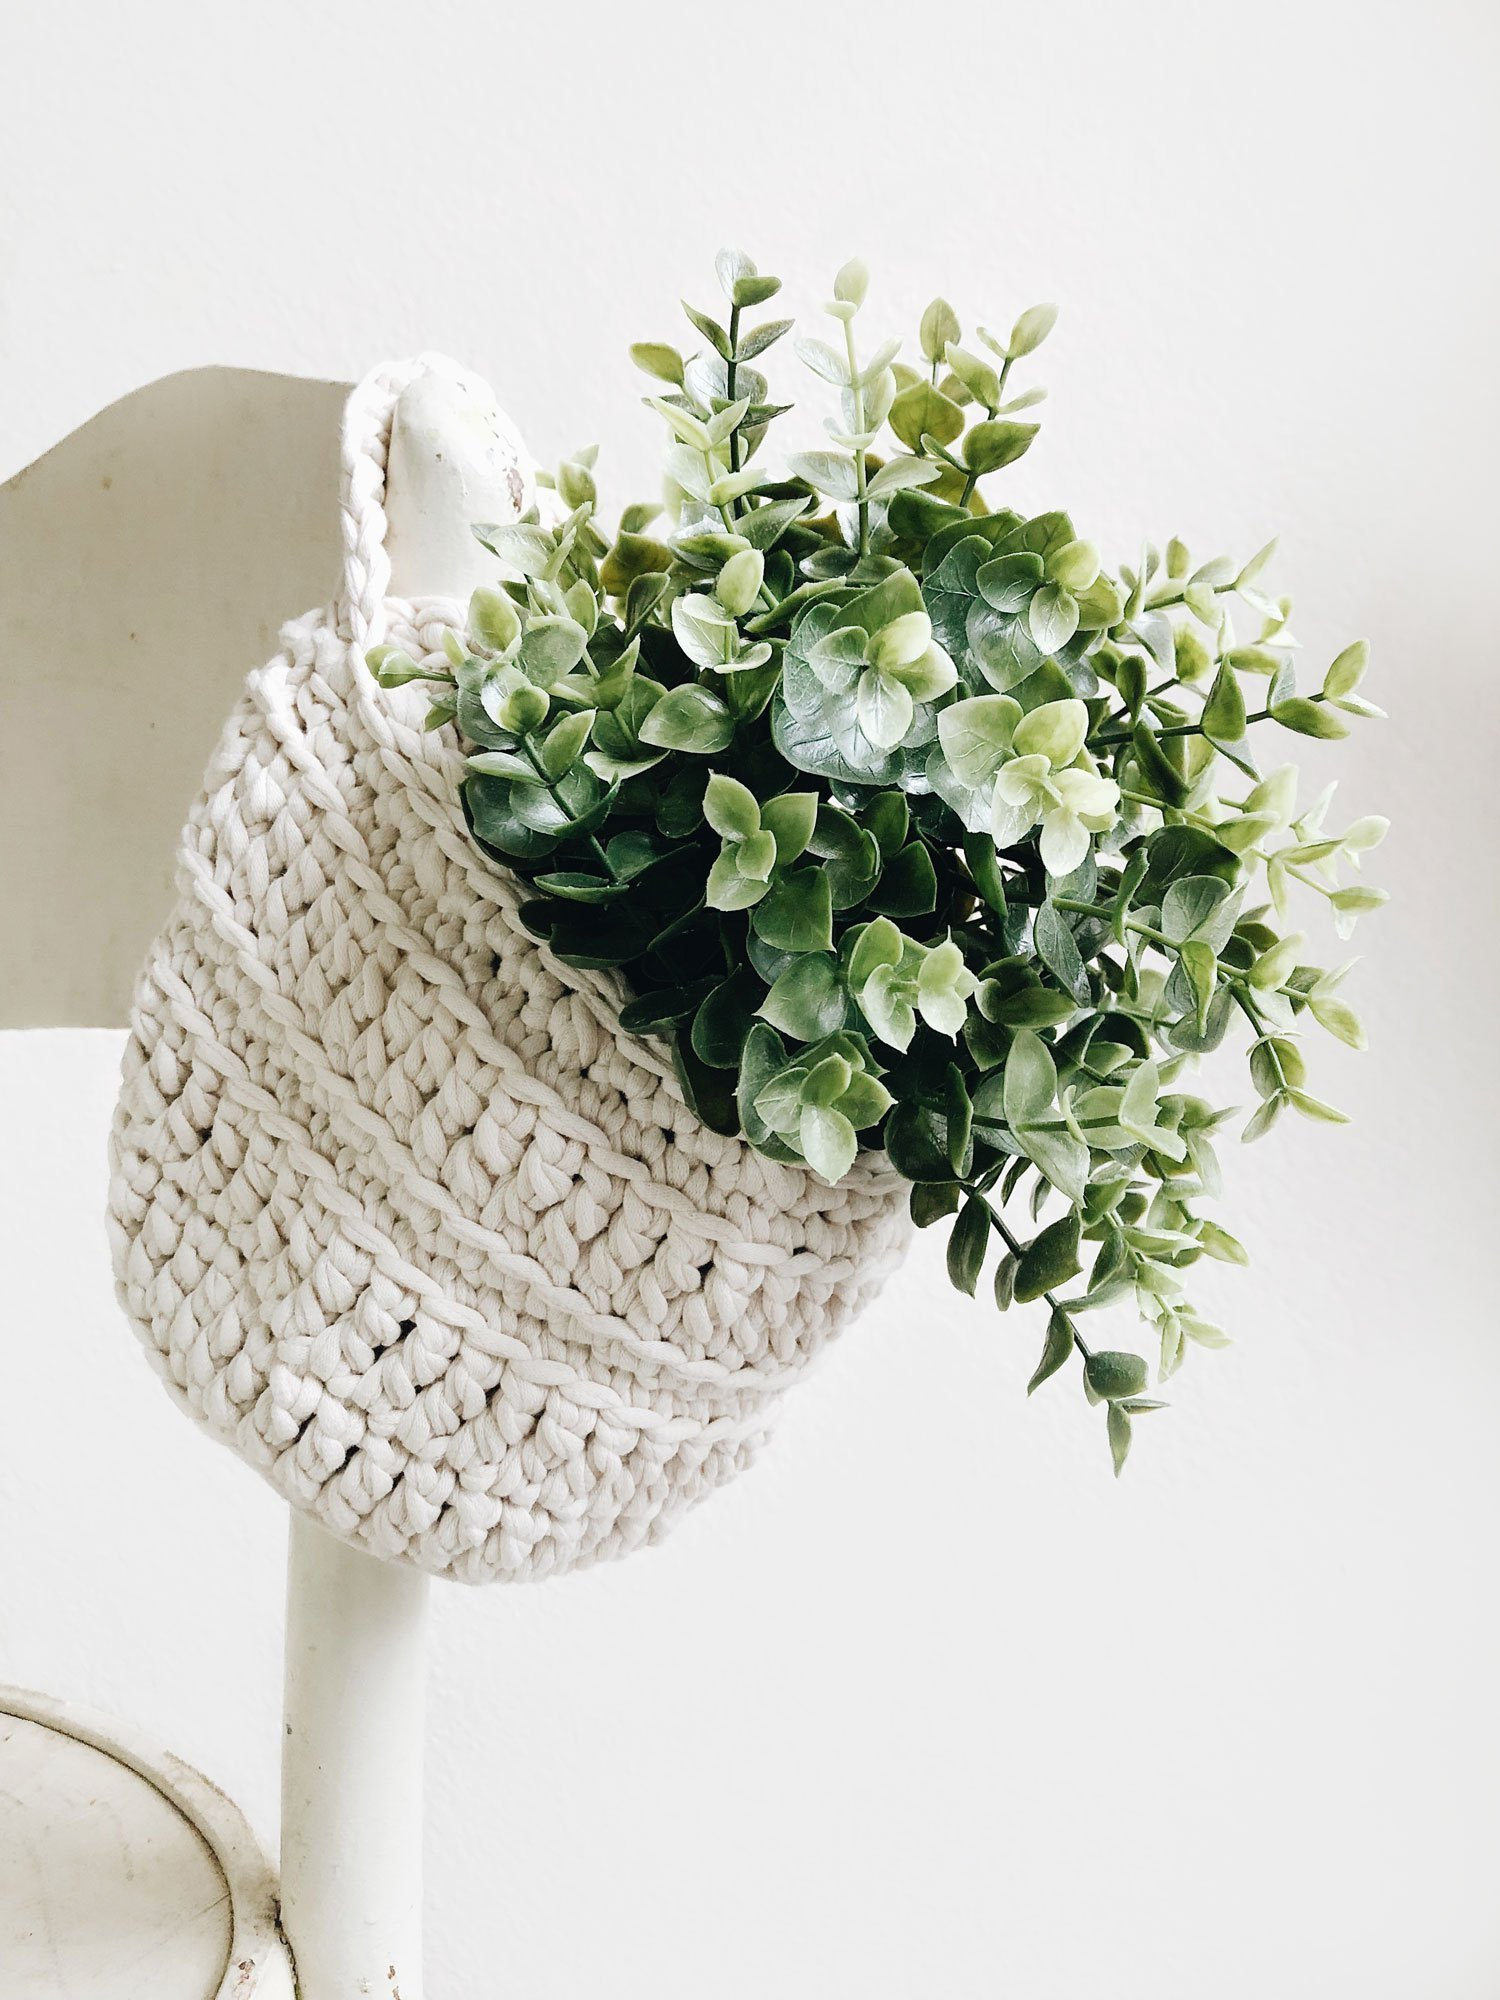 crochet basket.jpg